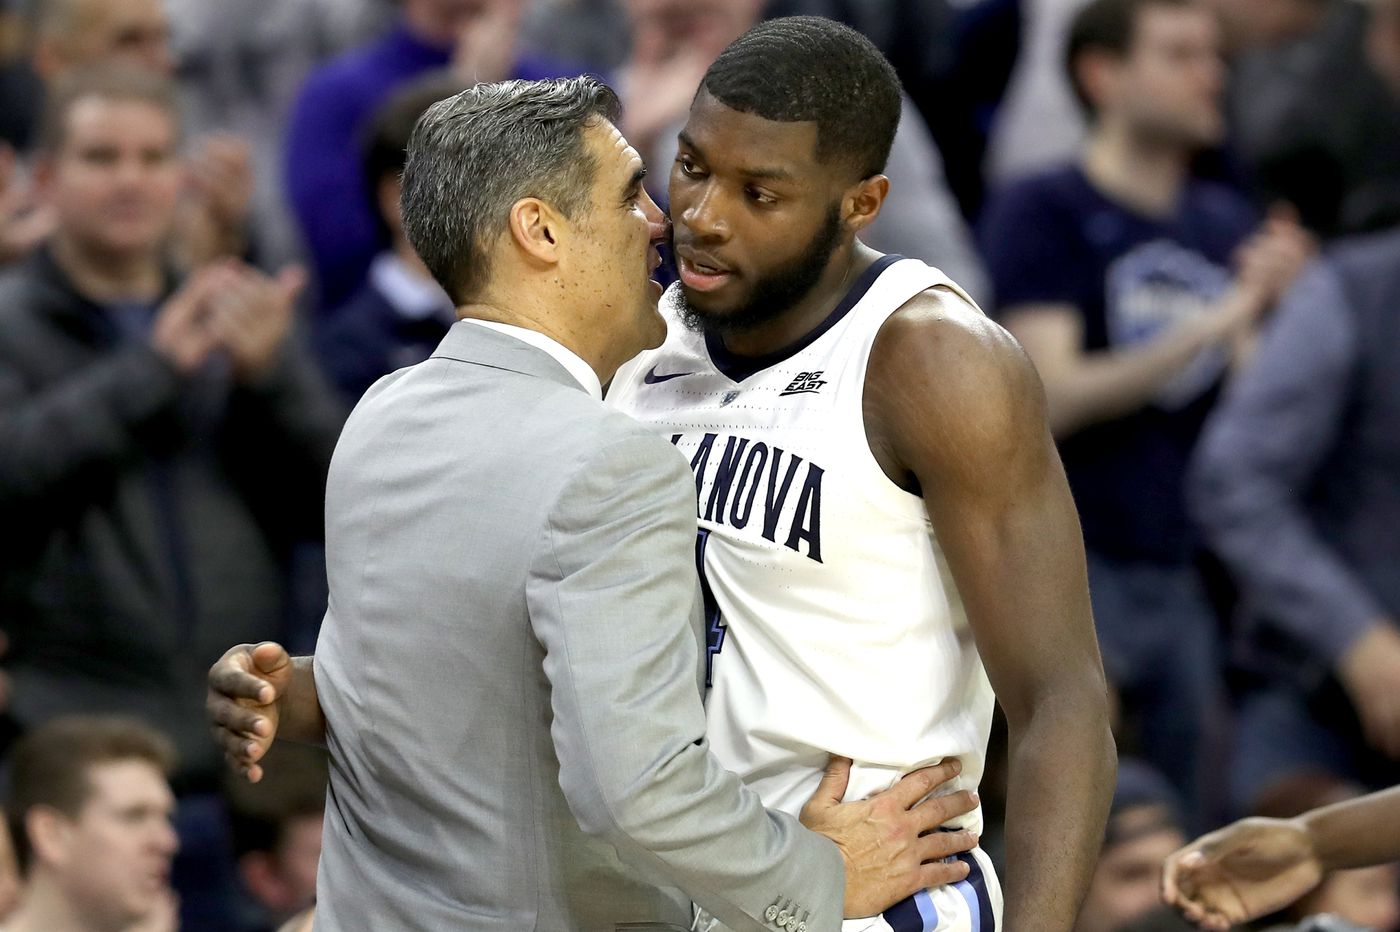 College admissions scandal highlights inequality; Conference tournament season begins for Villanova, Temple | Morning Newsletter